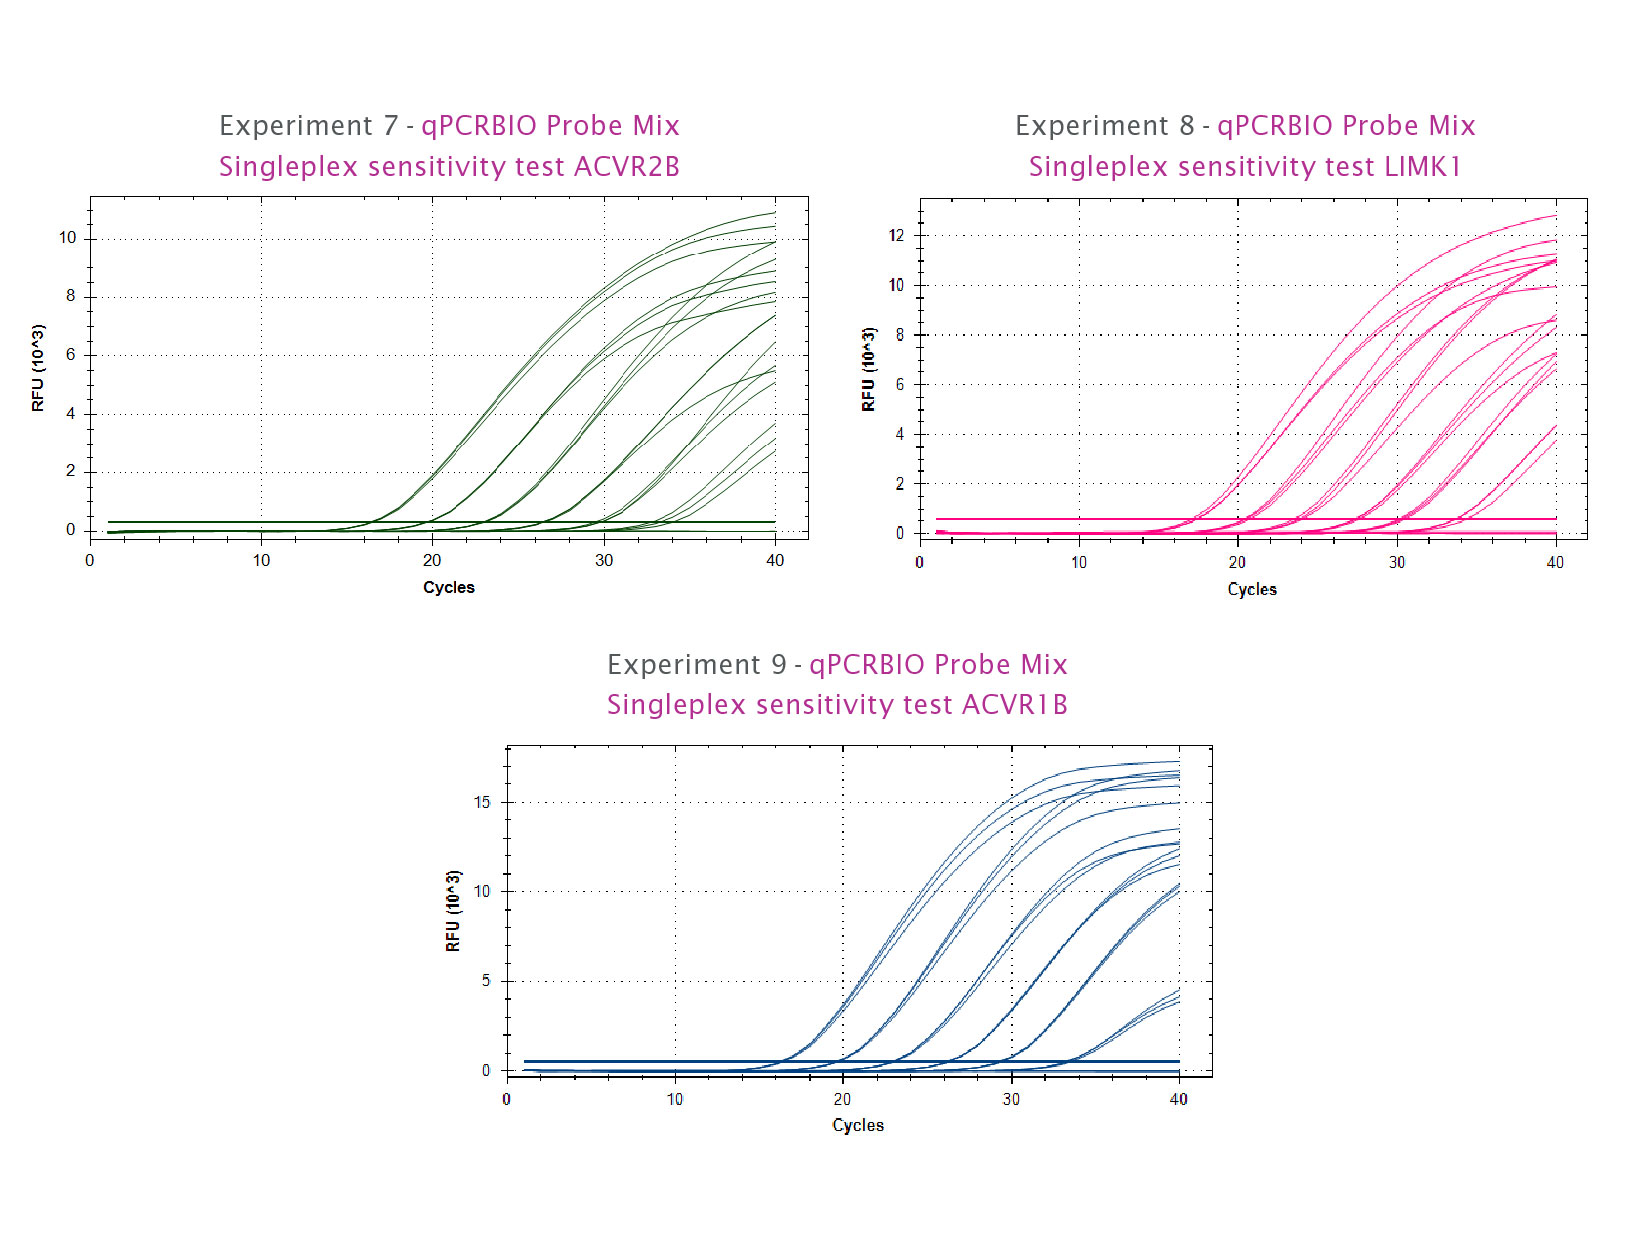 qPCRBIO Probe Blue Mix in a singleplex sensitivity test